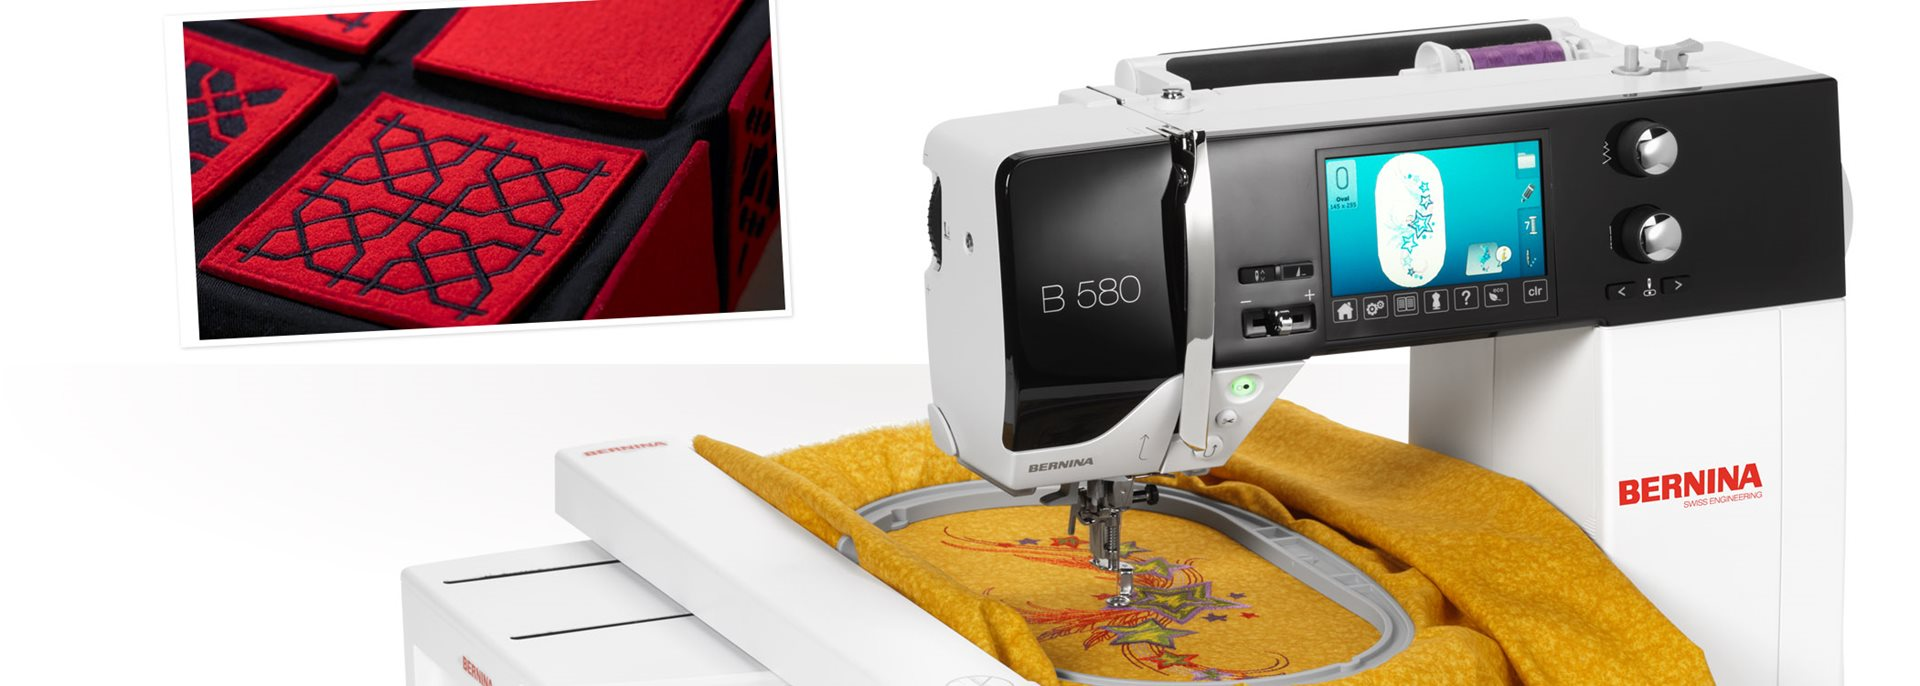 Bild: BERNINA Borduurmotief Design Studio